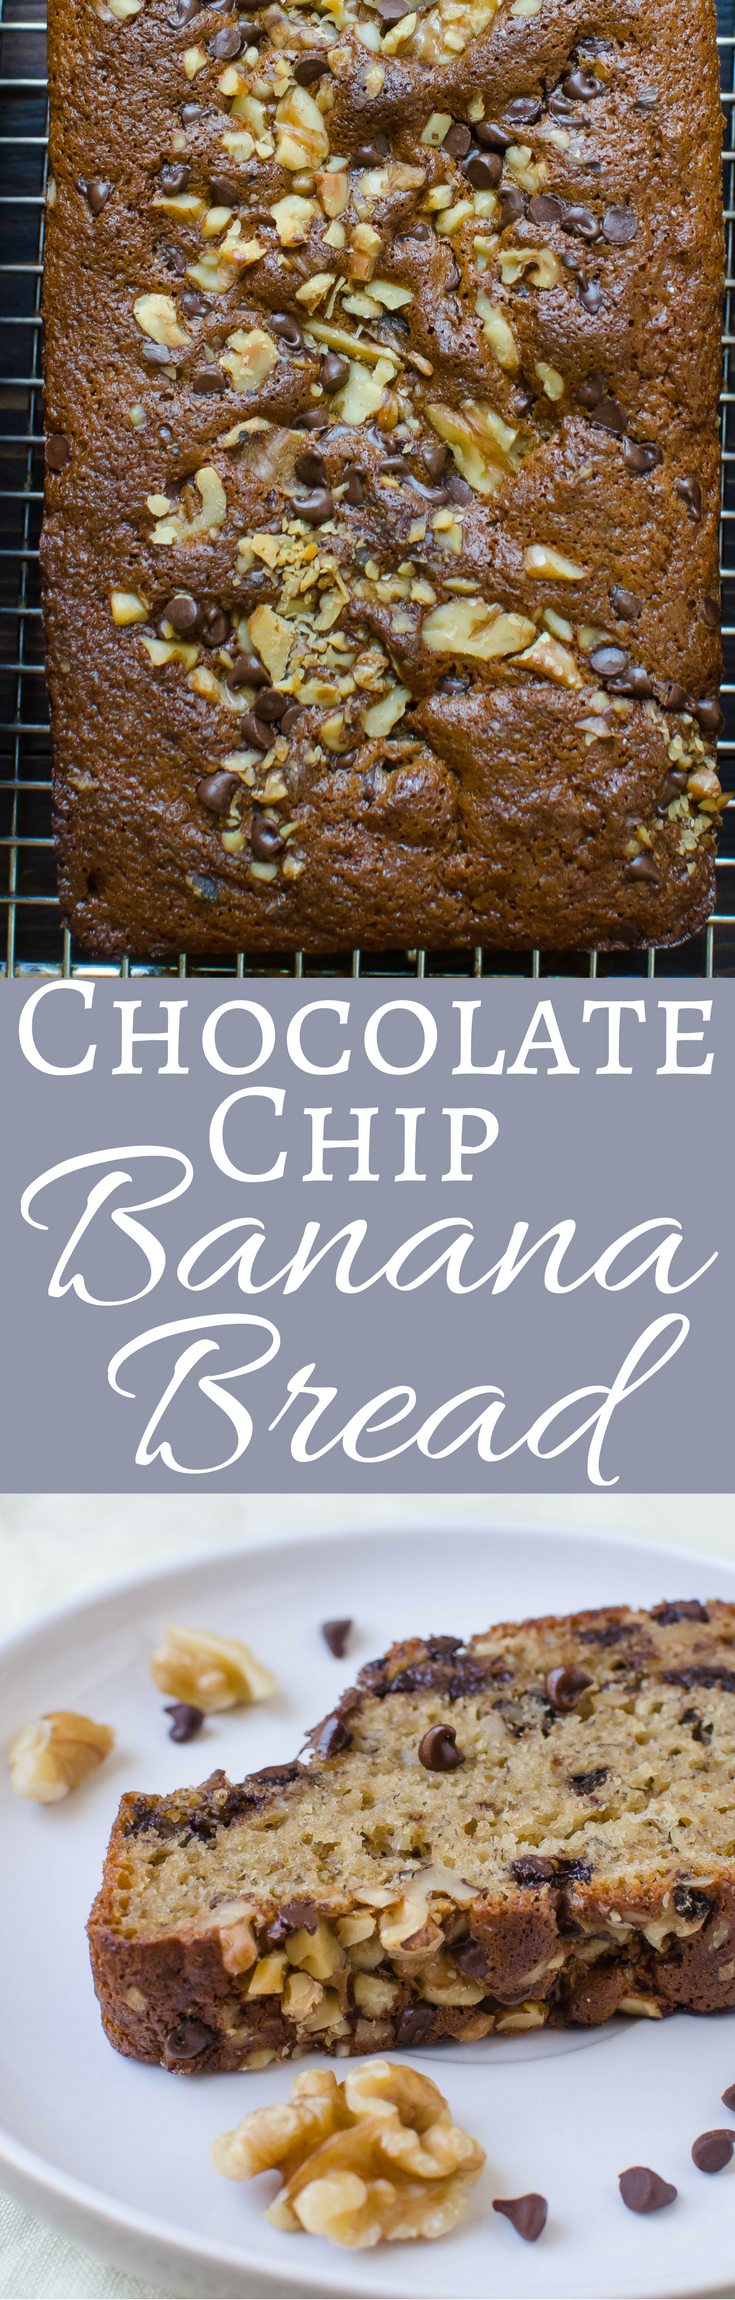 Put your over ripe bananas to good use in this easy low-fat chocolate chip banana bread recipe with crunchy, toasted walnuts!  Makes three loaves!